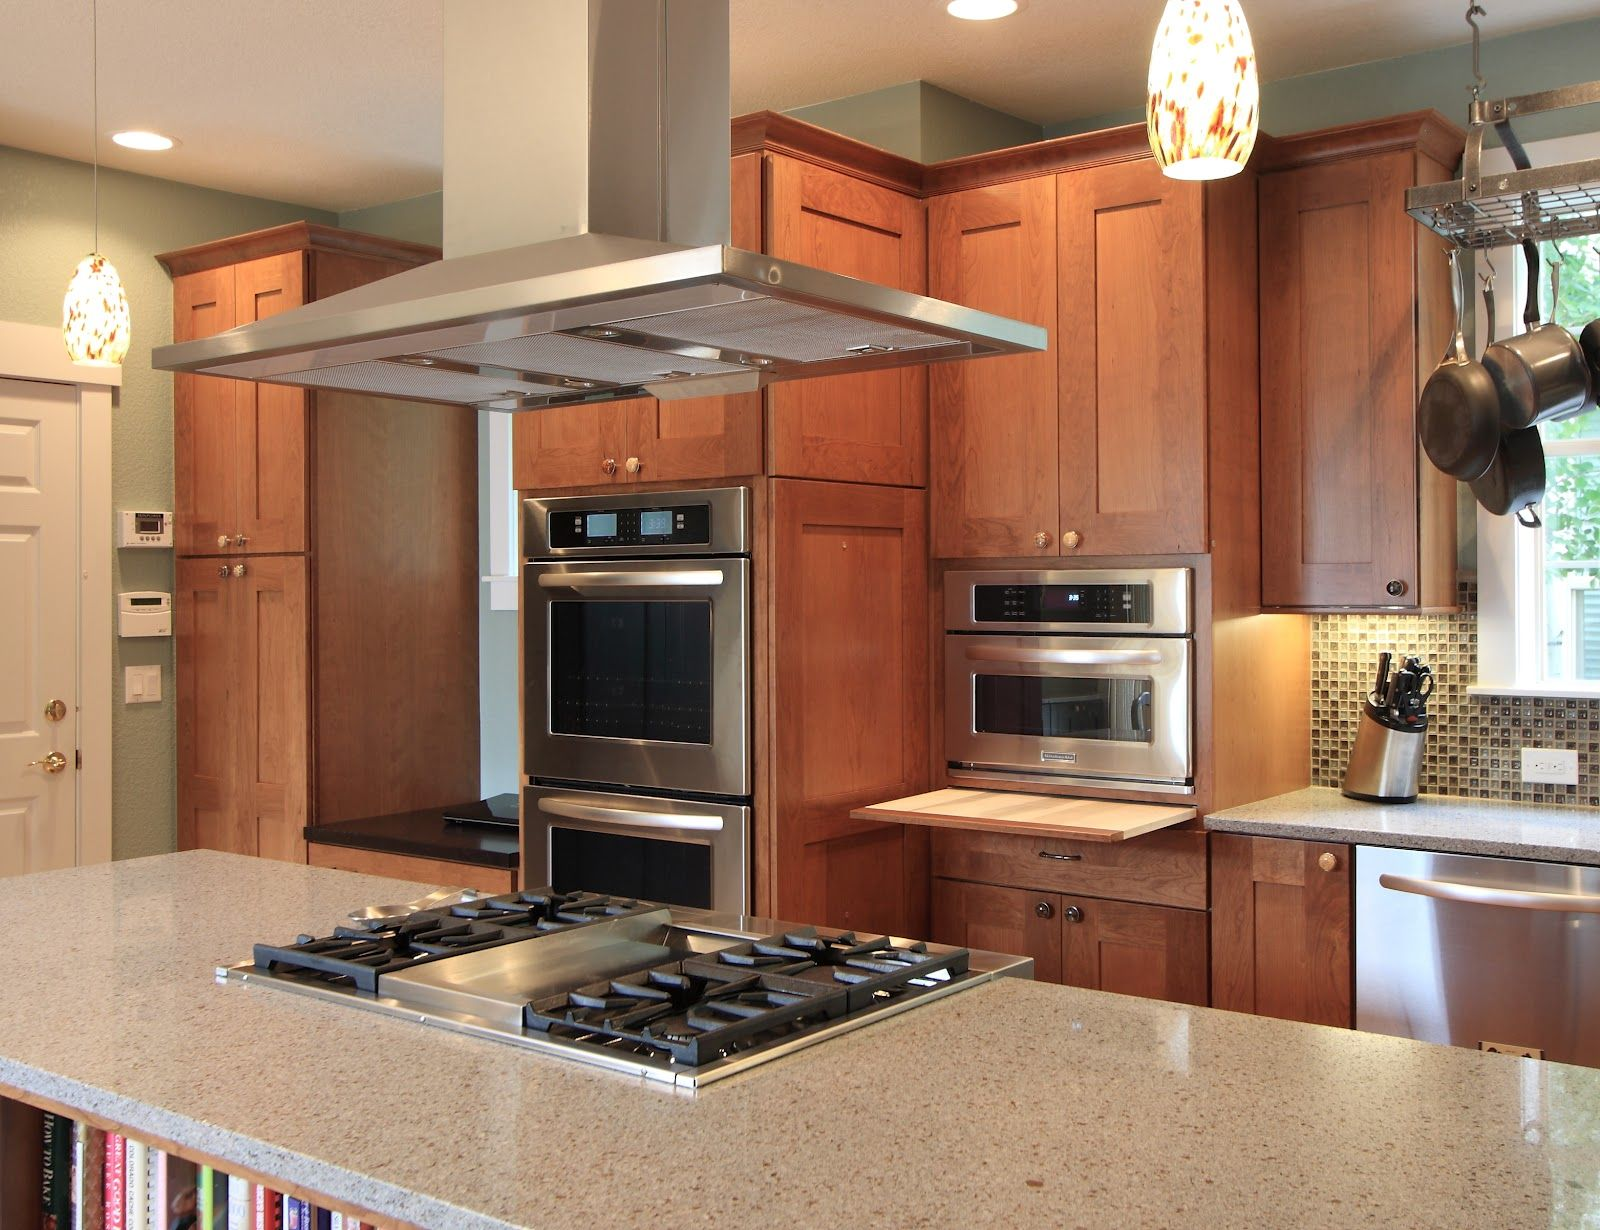 Island Cooktop | Island Cooktop And Oven Cabinets Beyond U2013 My Favorite  Cabinet Is The .